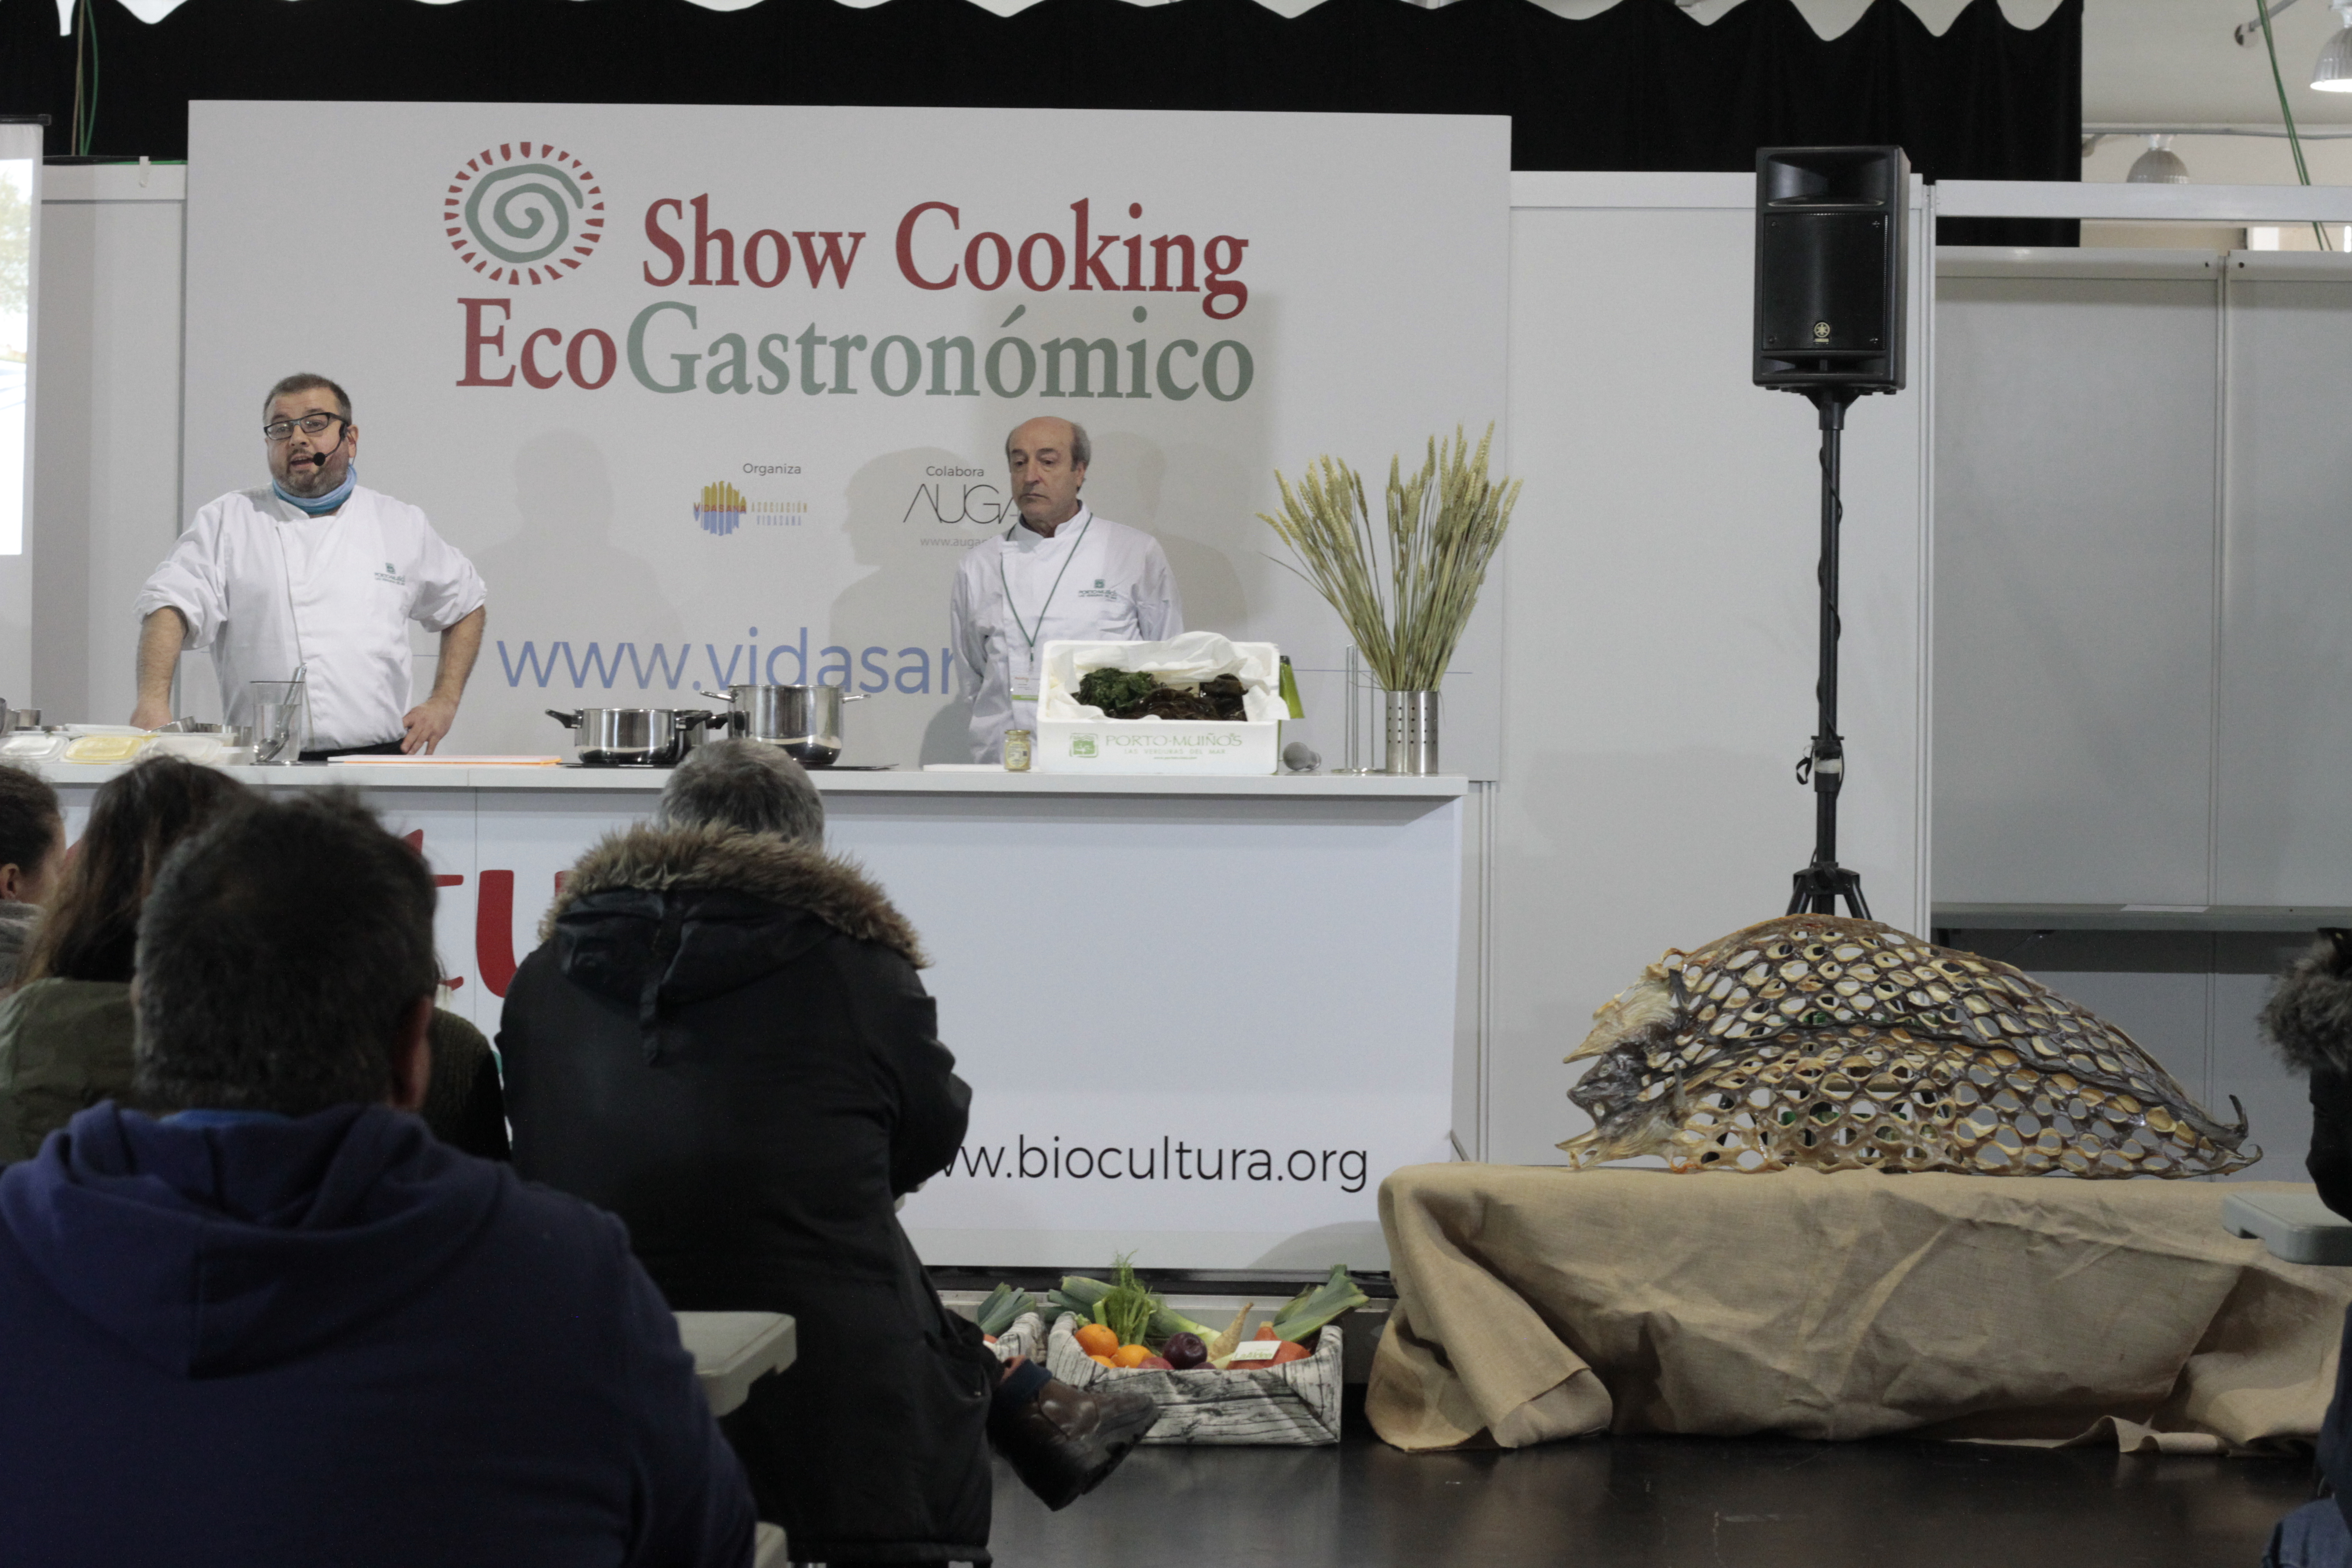 Showcooking 3 marzo